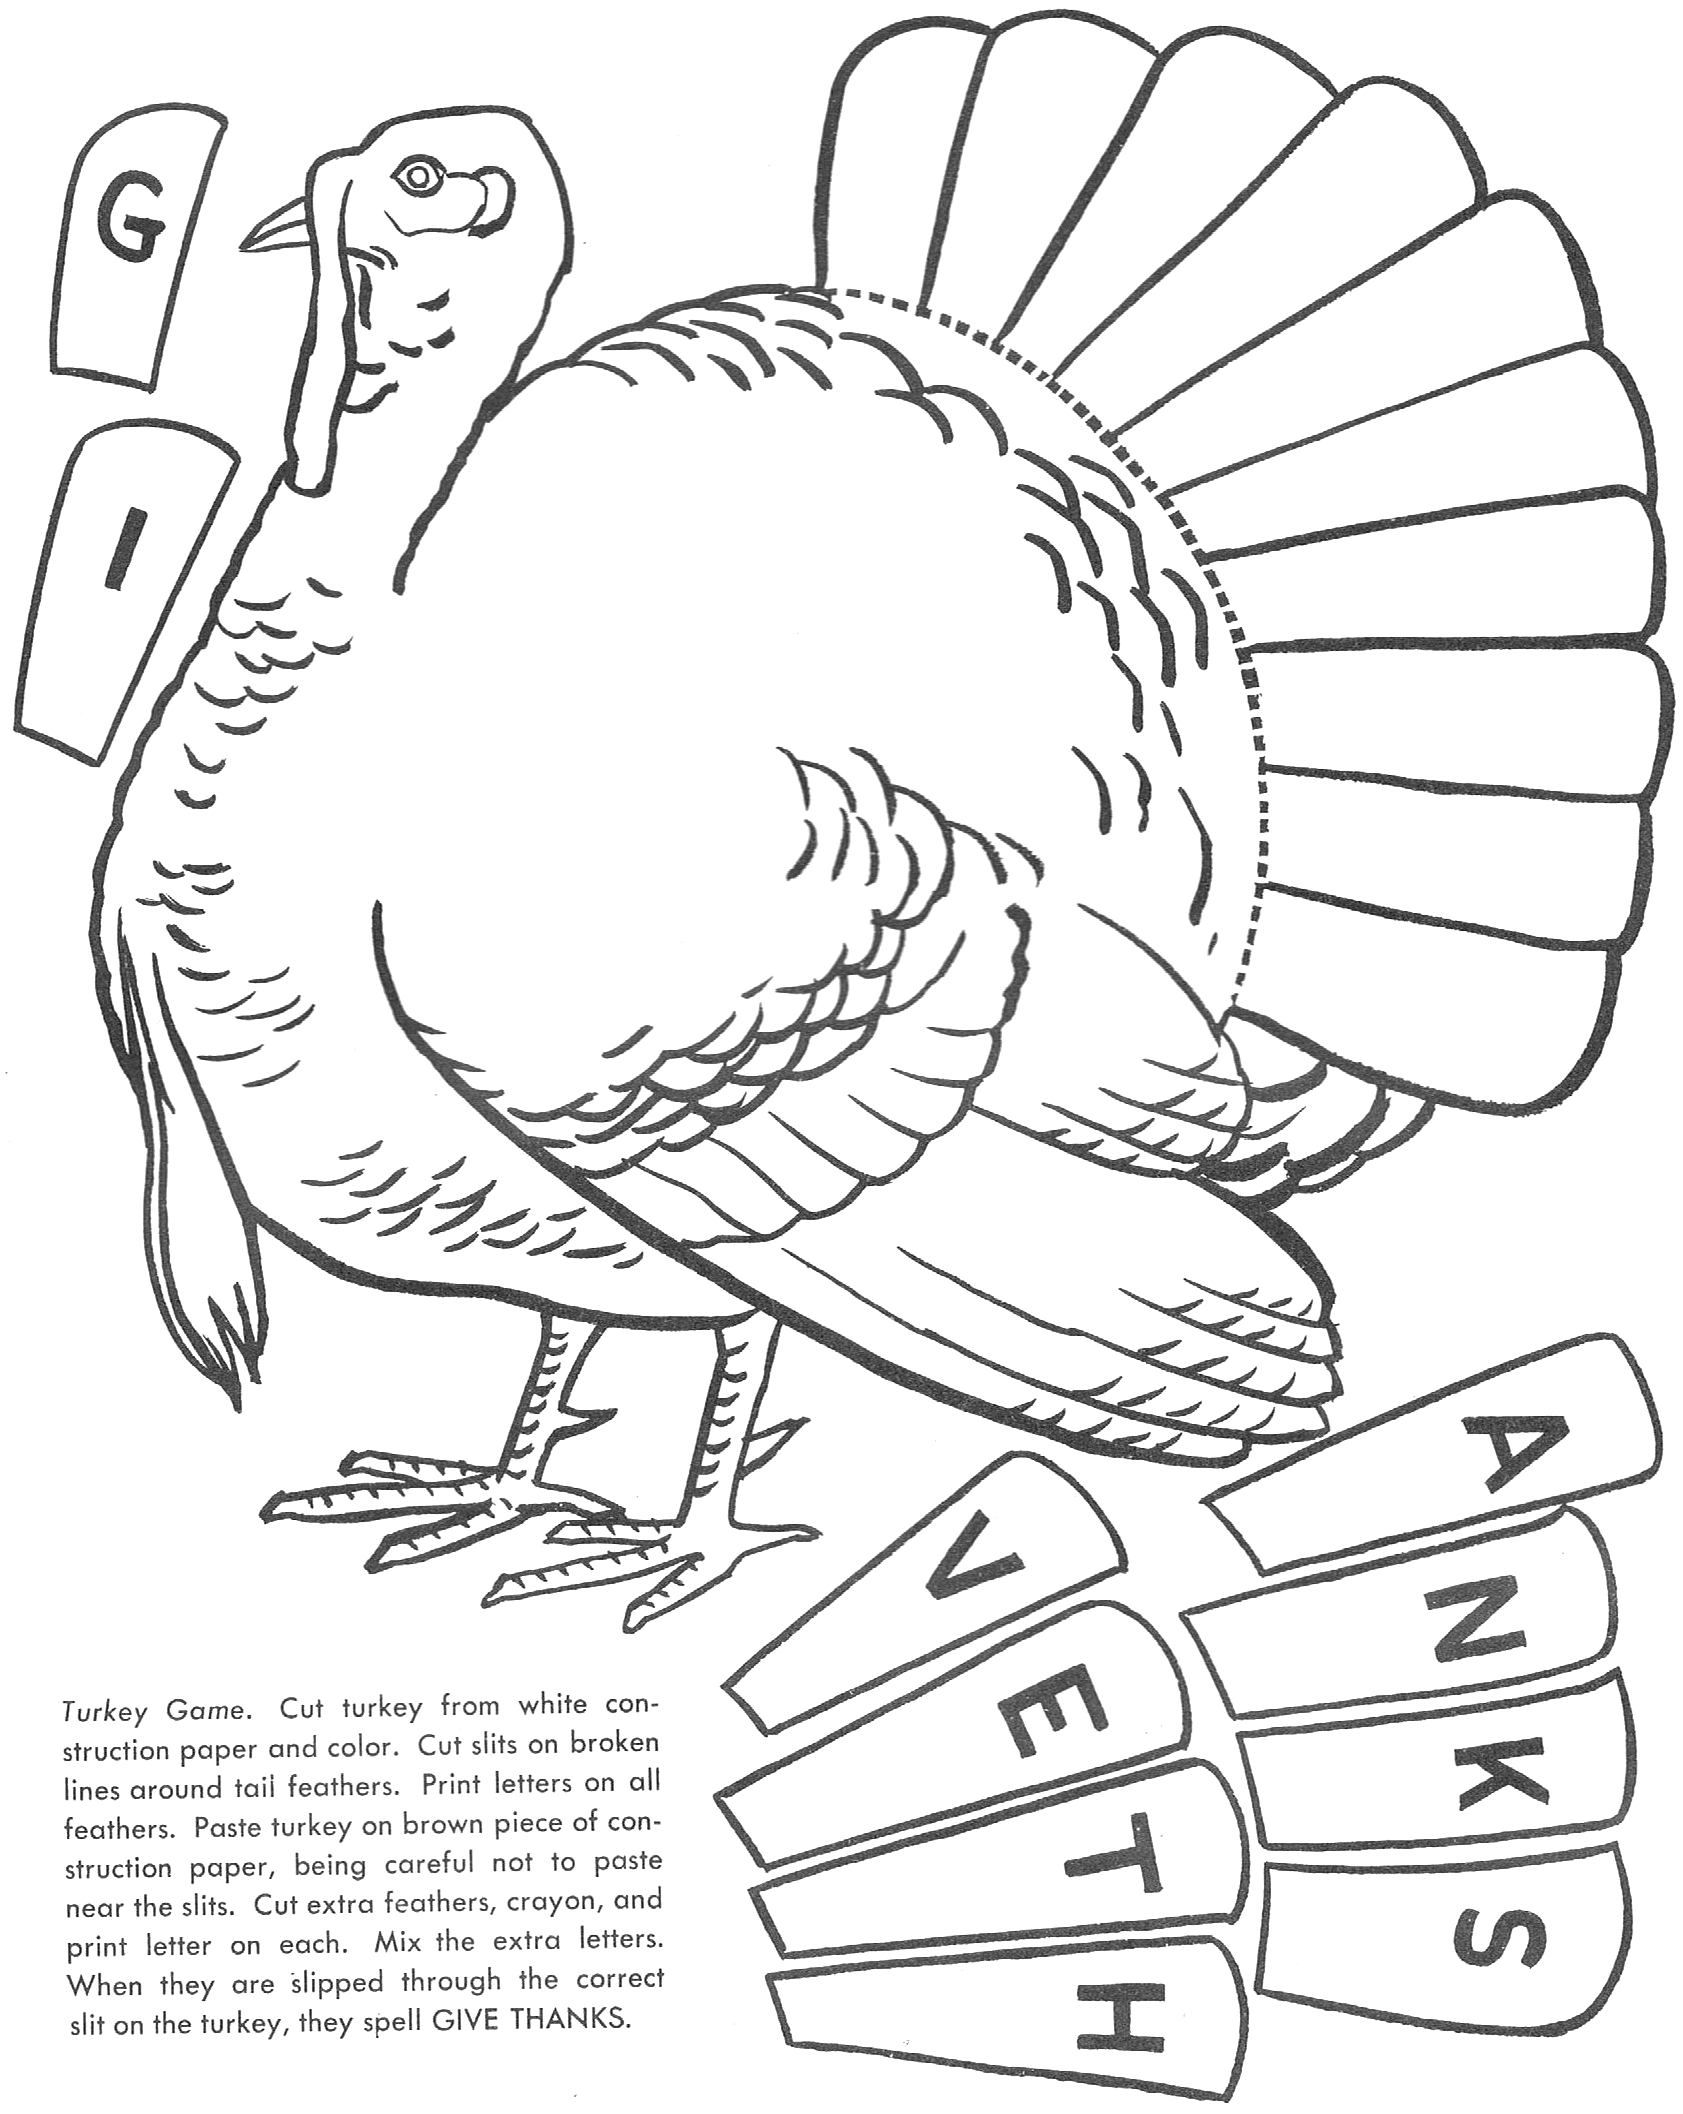 How To Play The Turkey Game Turkey Printable Kids Crafts